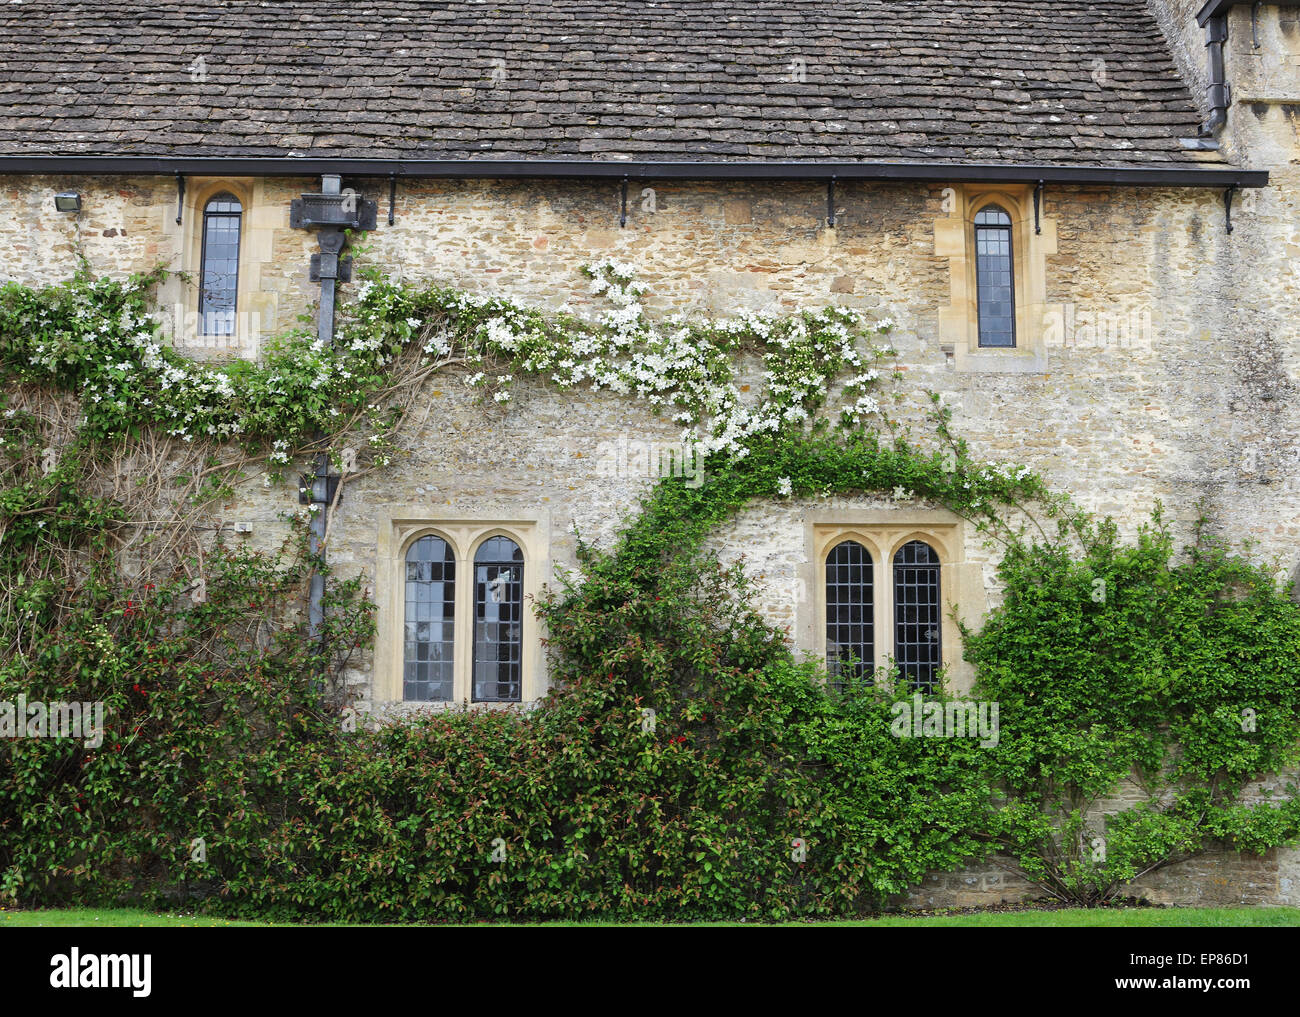 Medieval English Manor with mullion windows and climbing plants on the wall - Stock Image